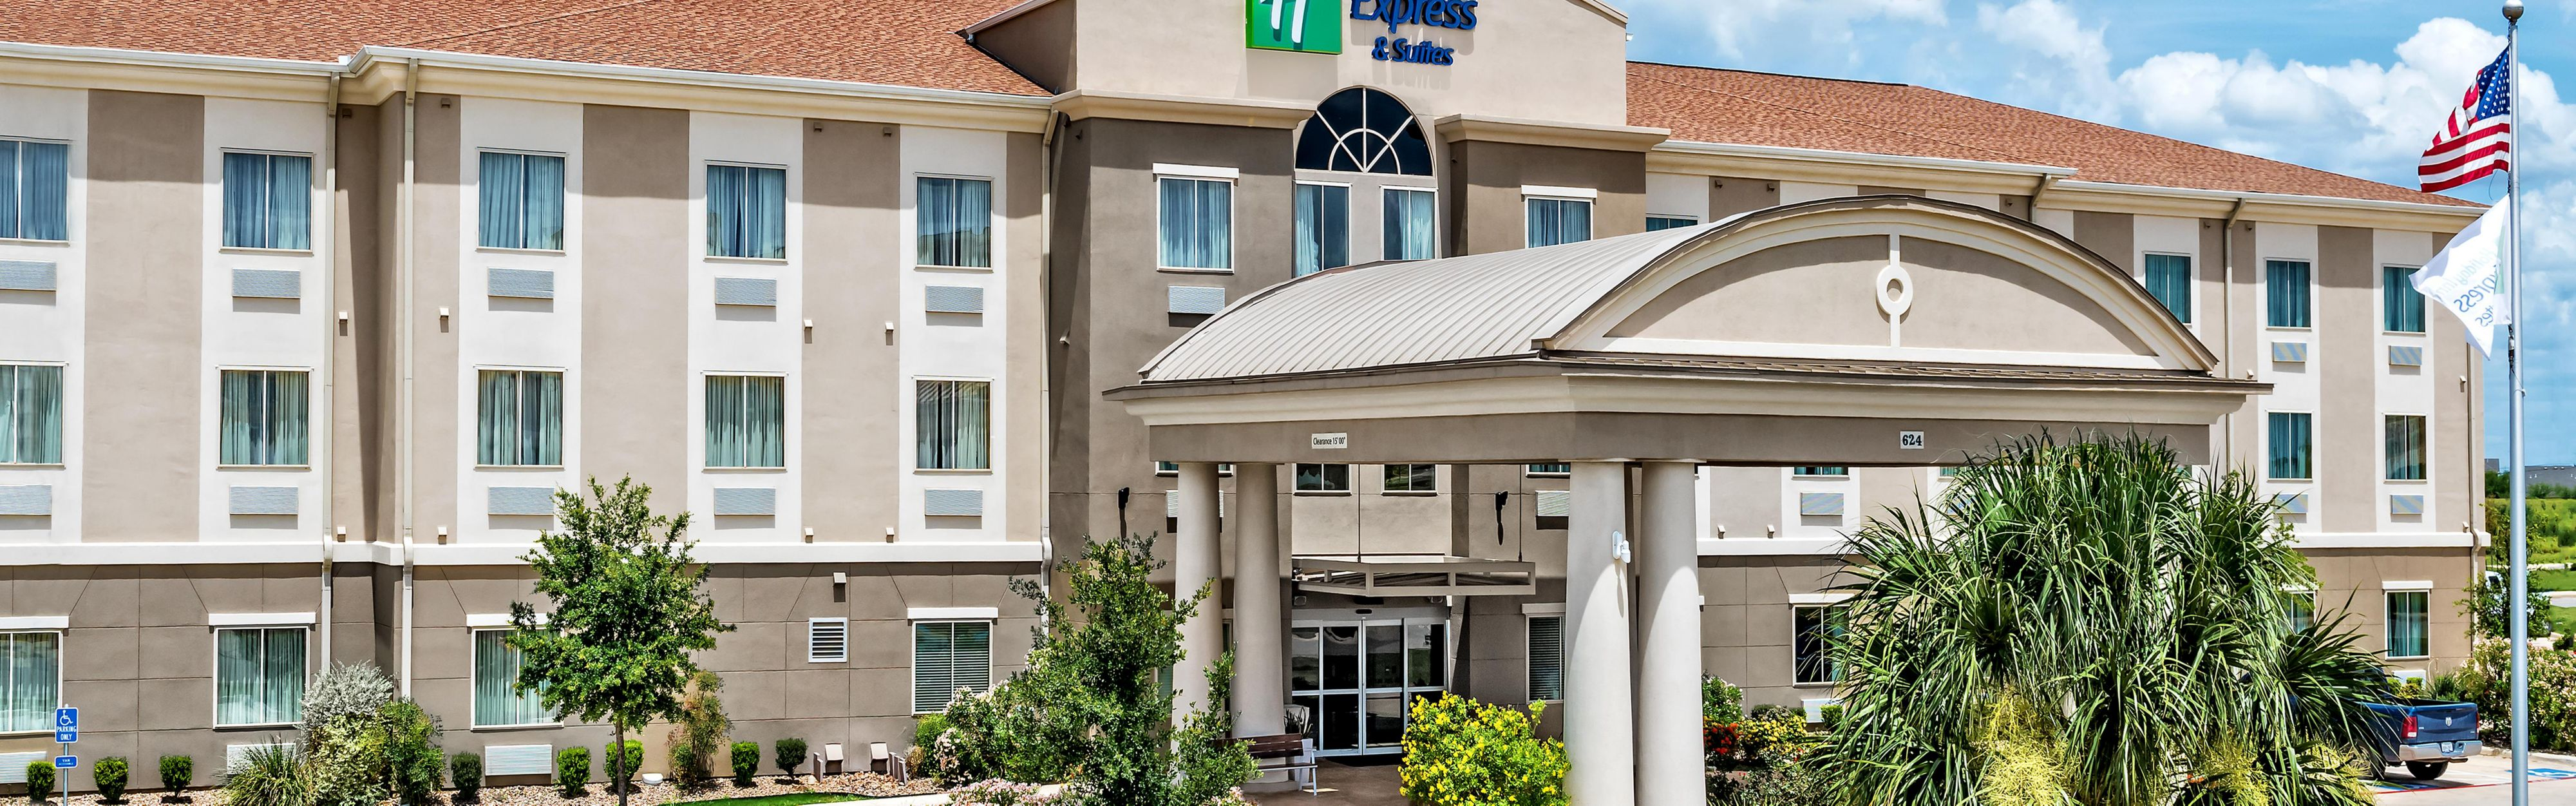 Holiday Inn Express & Suites Cotulla image 0